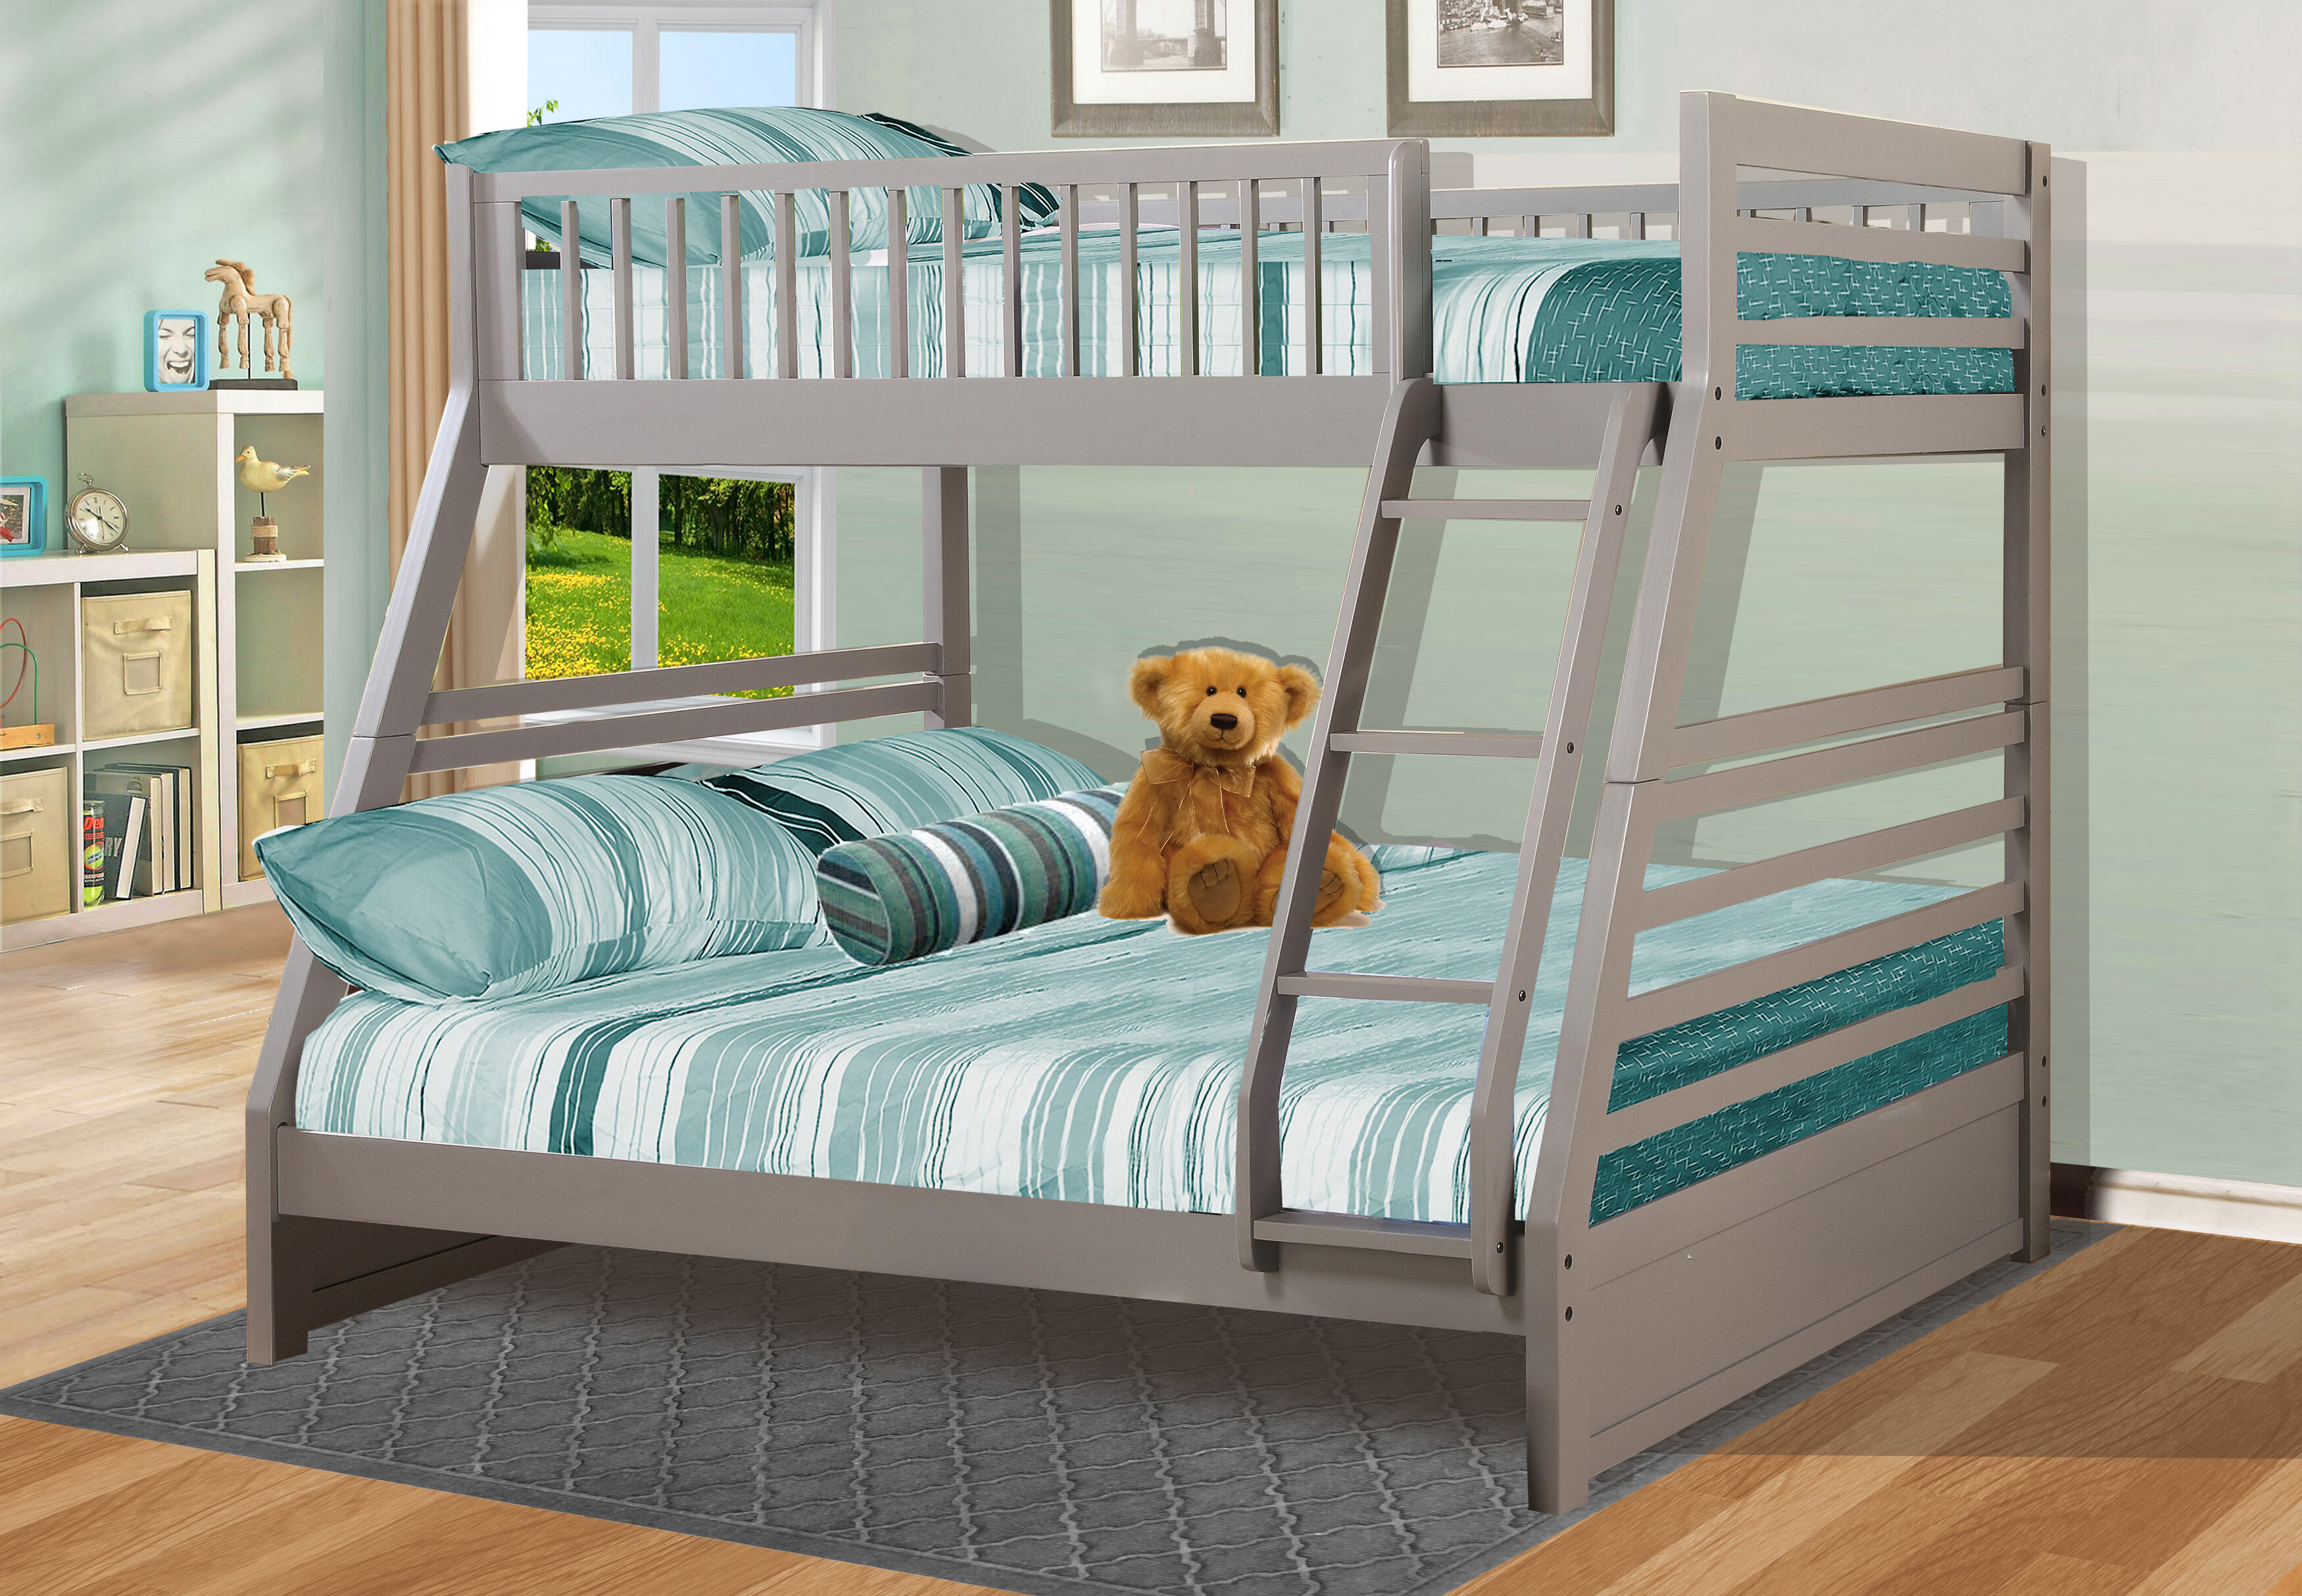 Wildon Home® Twin over Full Bed & Reviews   Wayfair